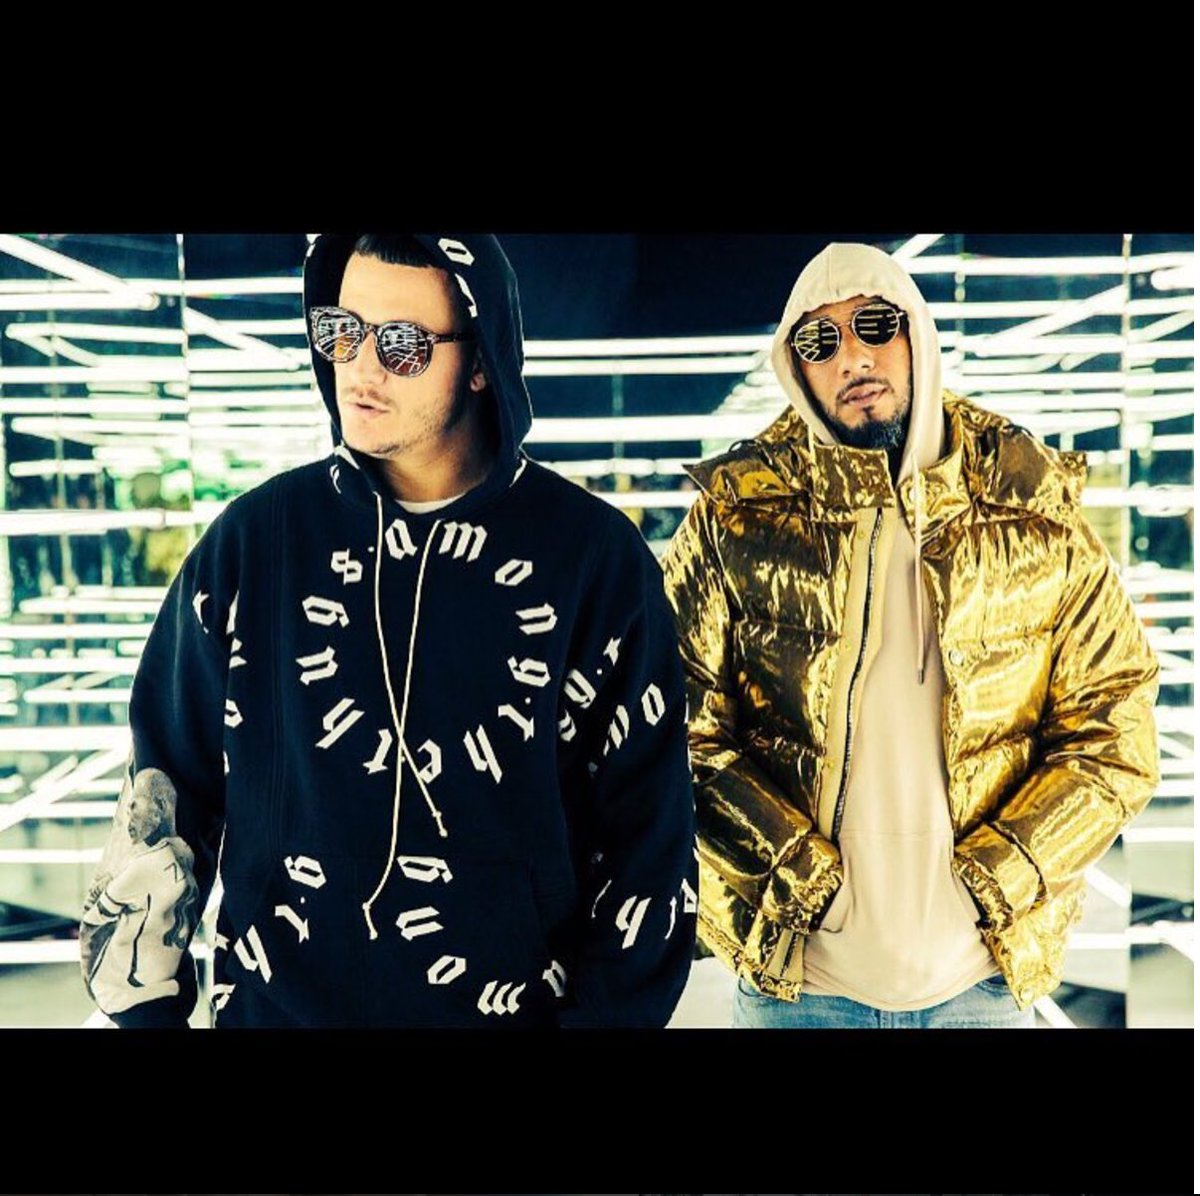 We are SO PUMPED for this @djsnake x @THEREALSWIZZZ new video... https://t.co/DrCVudvQrA